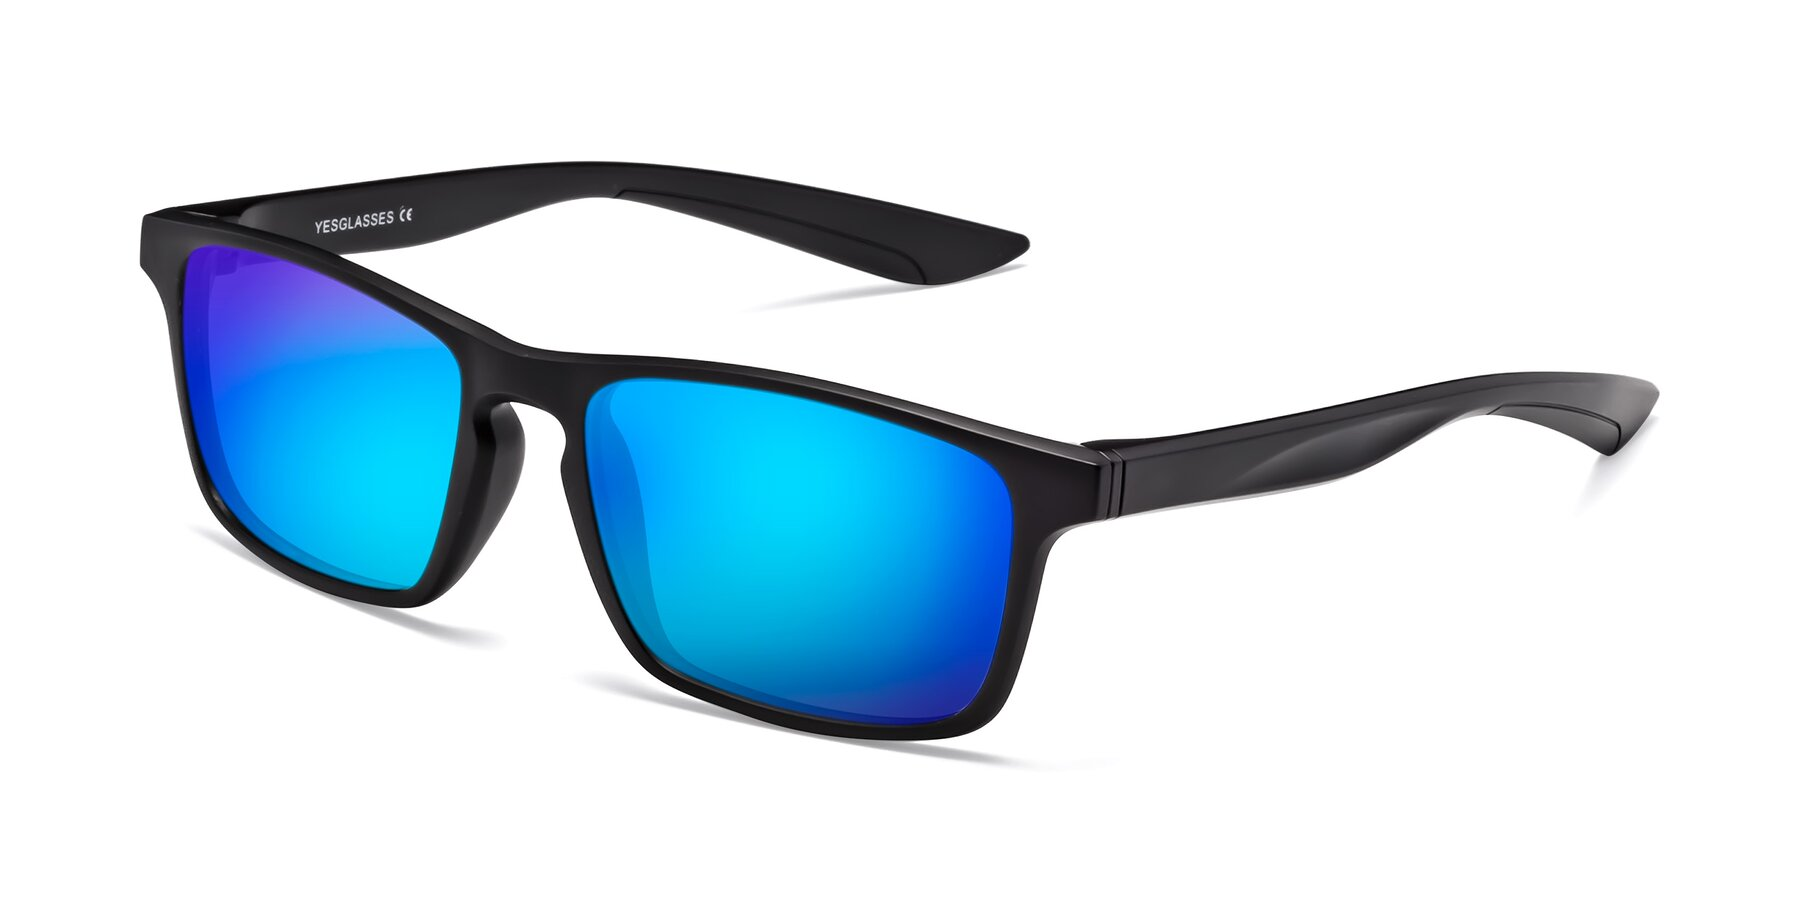 Angle of Passion in Matte Black with Blue Mirrored Lenses